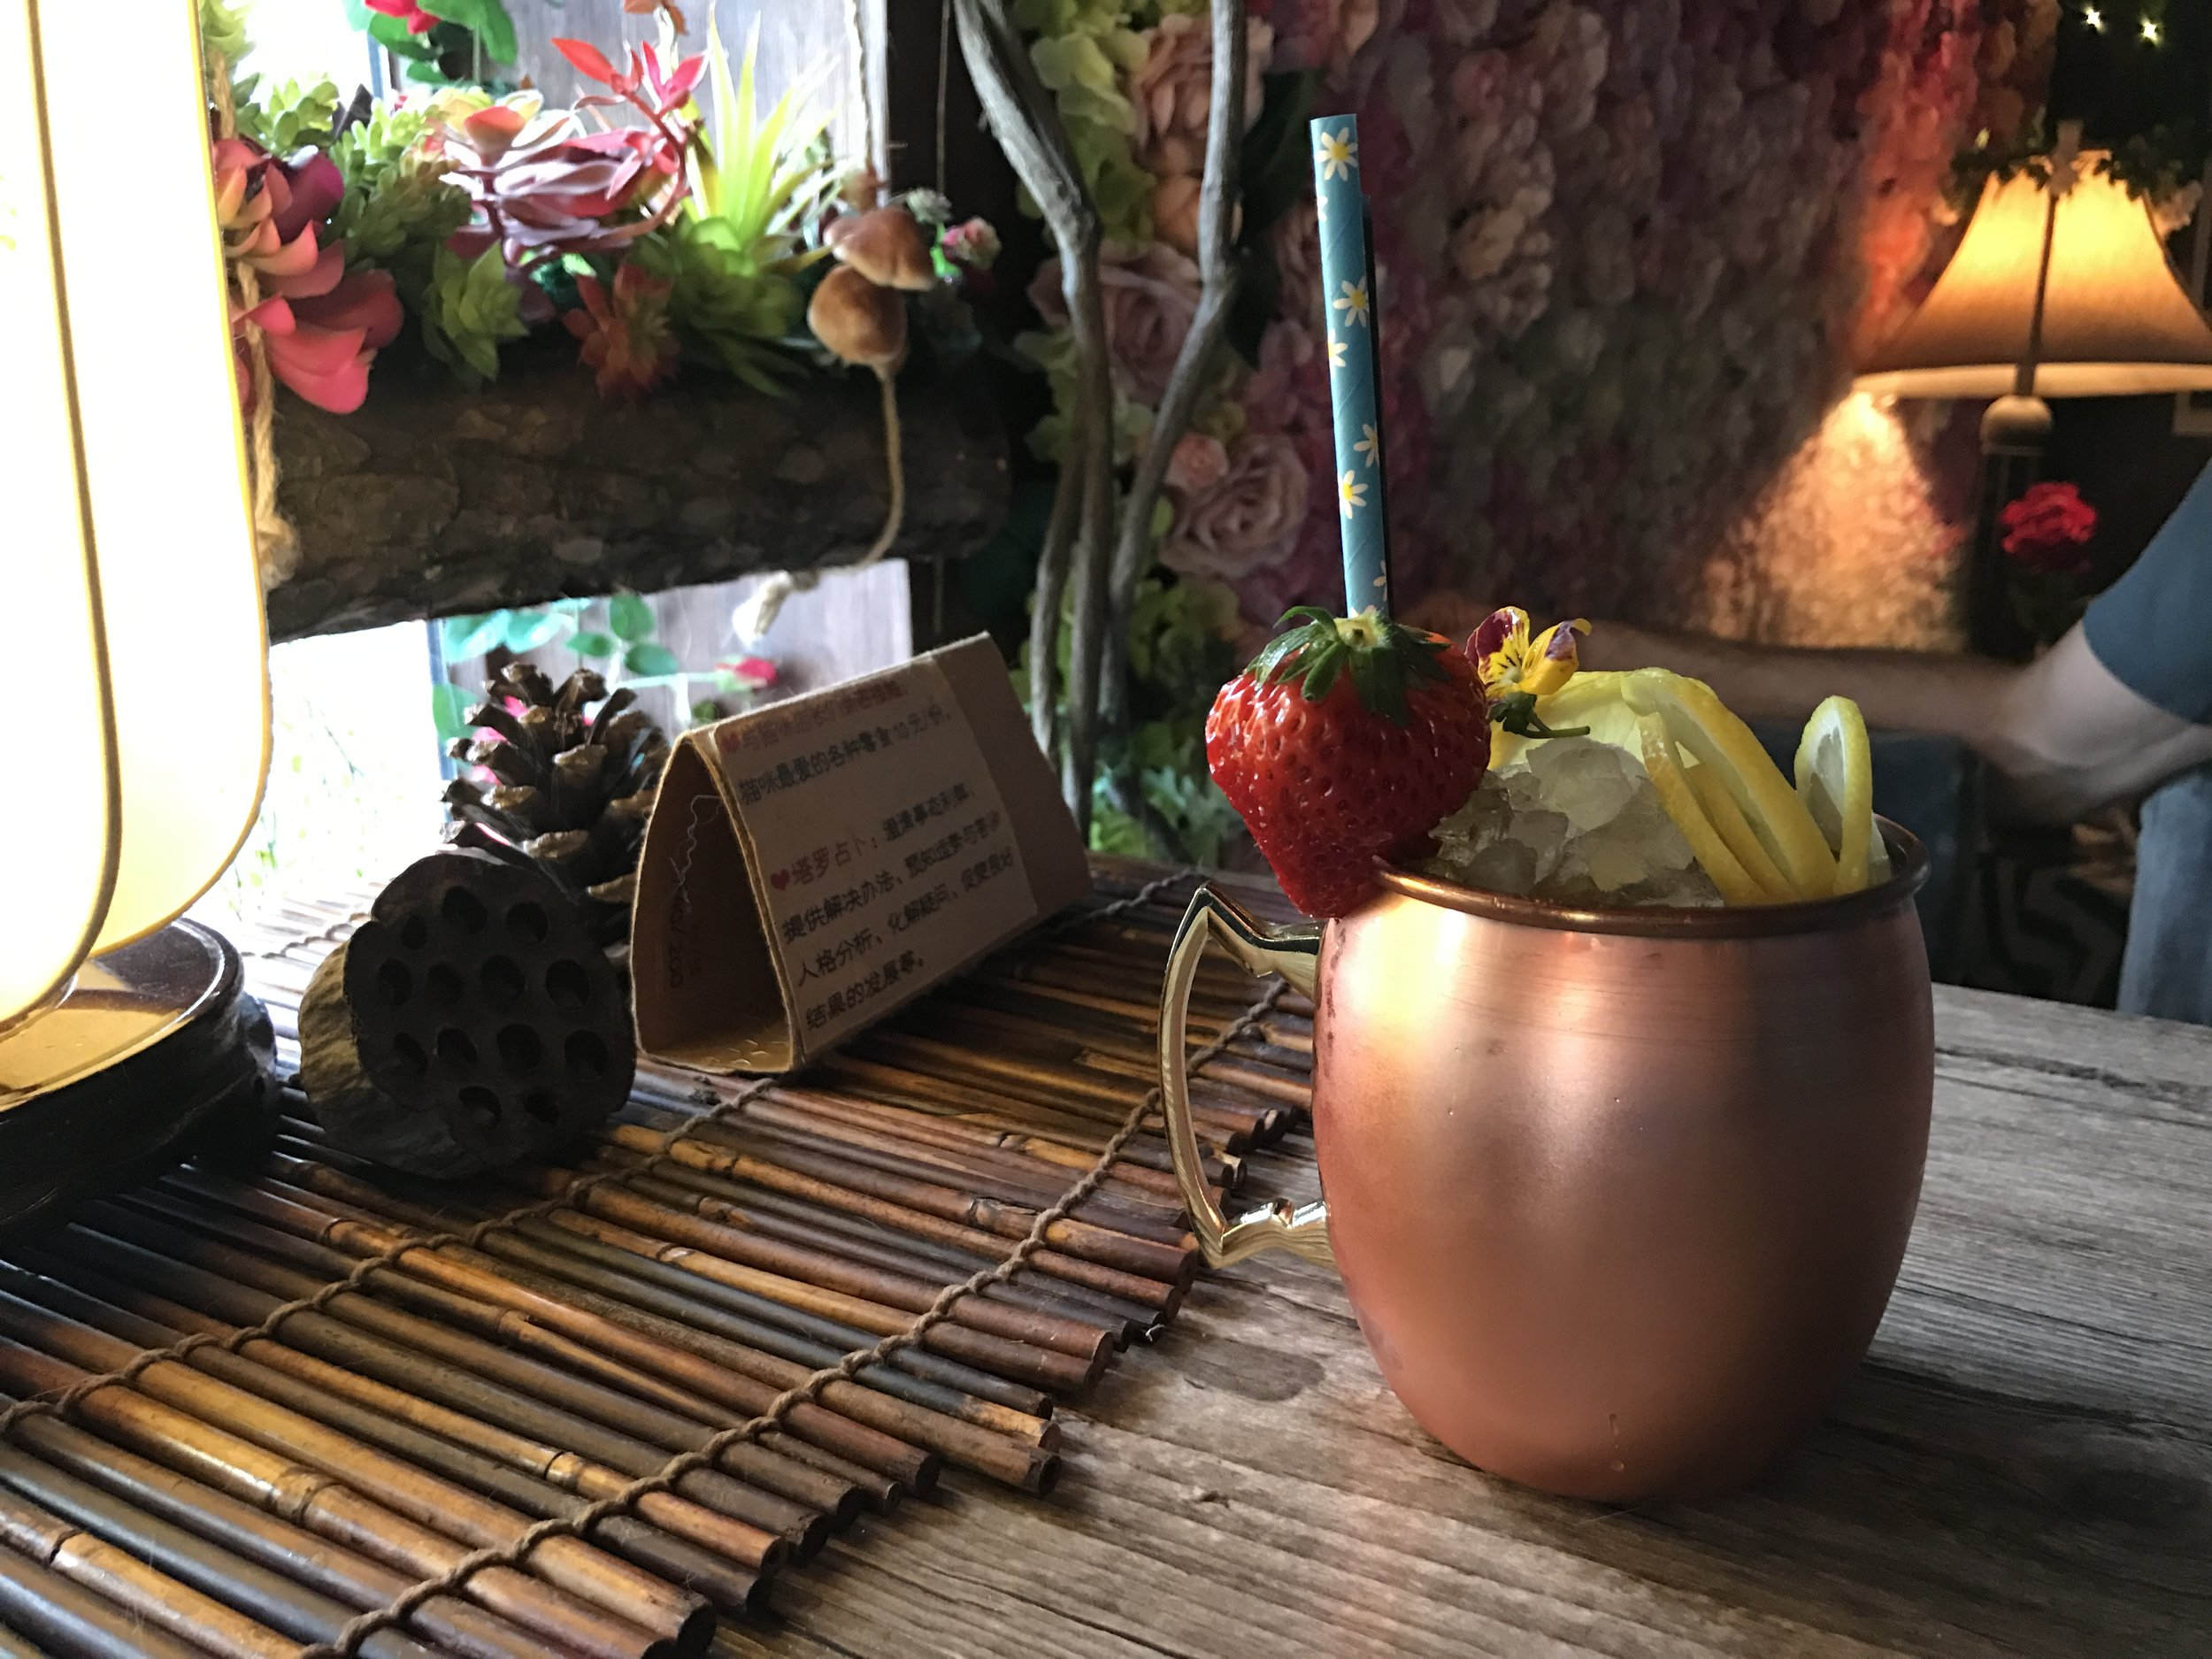 This beautiful cat cafe and bar serves upscale drinks